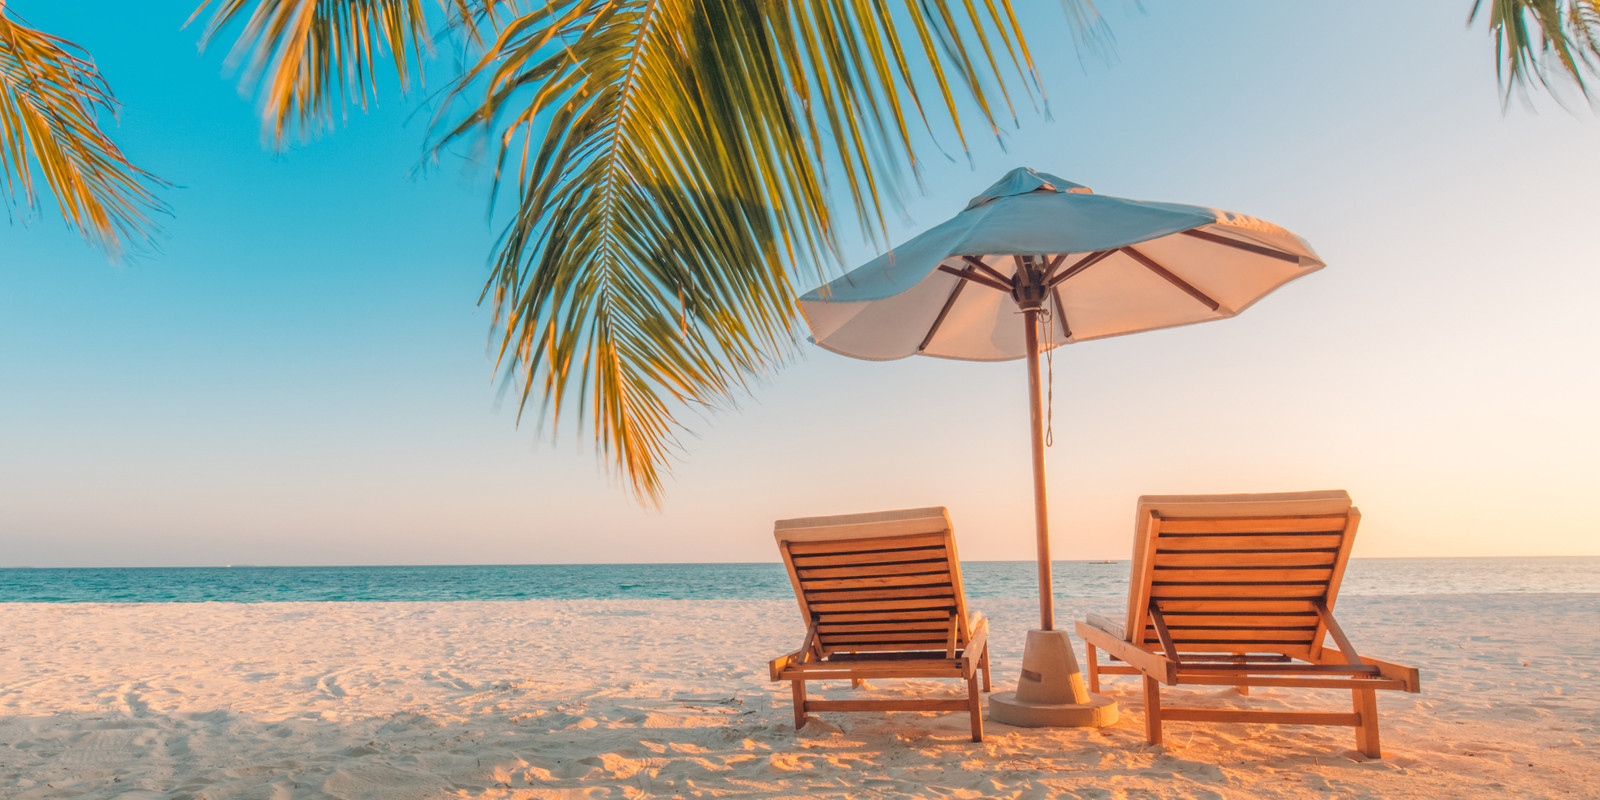 Relaxing Beach With Chairs